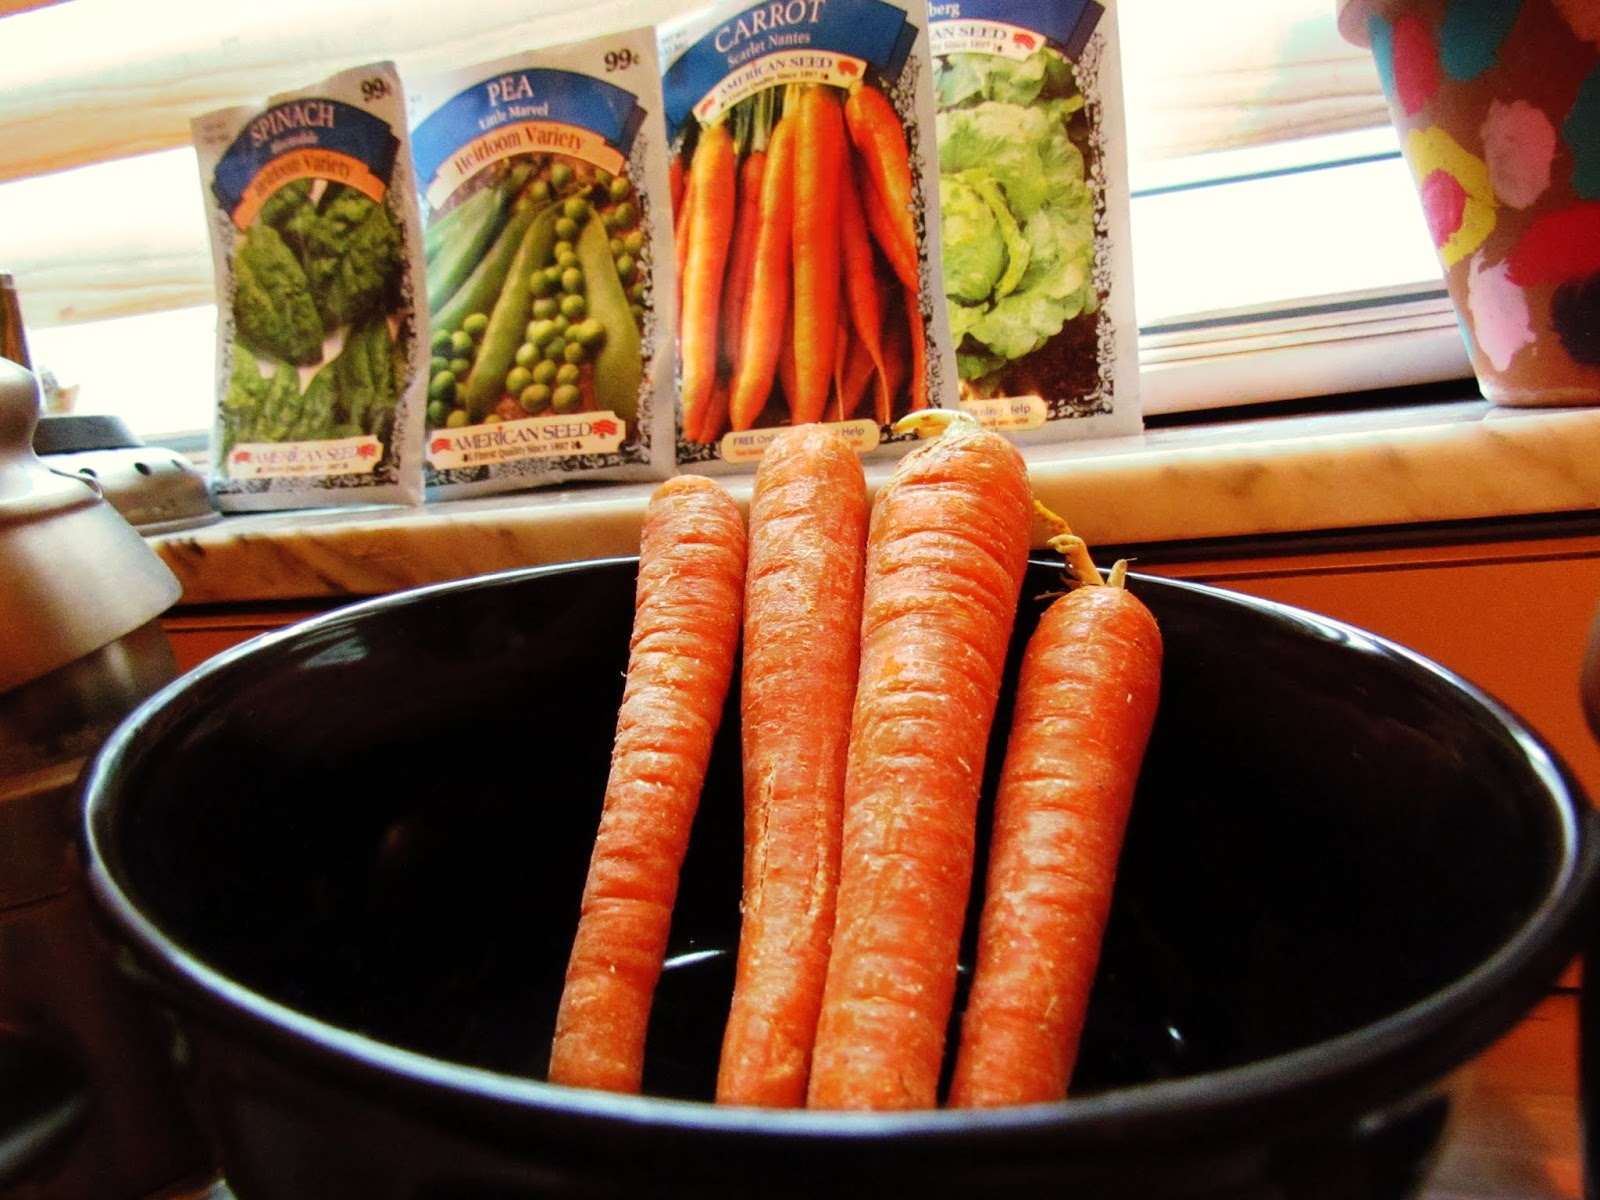 Make Sweet Carrot Juice or Organic Carrot Soup Fresh From the Garden